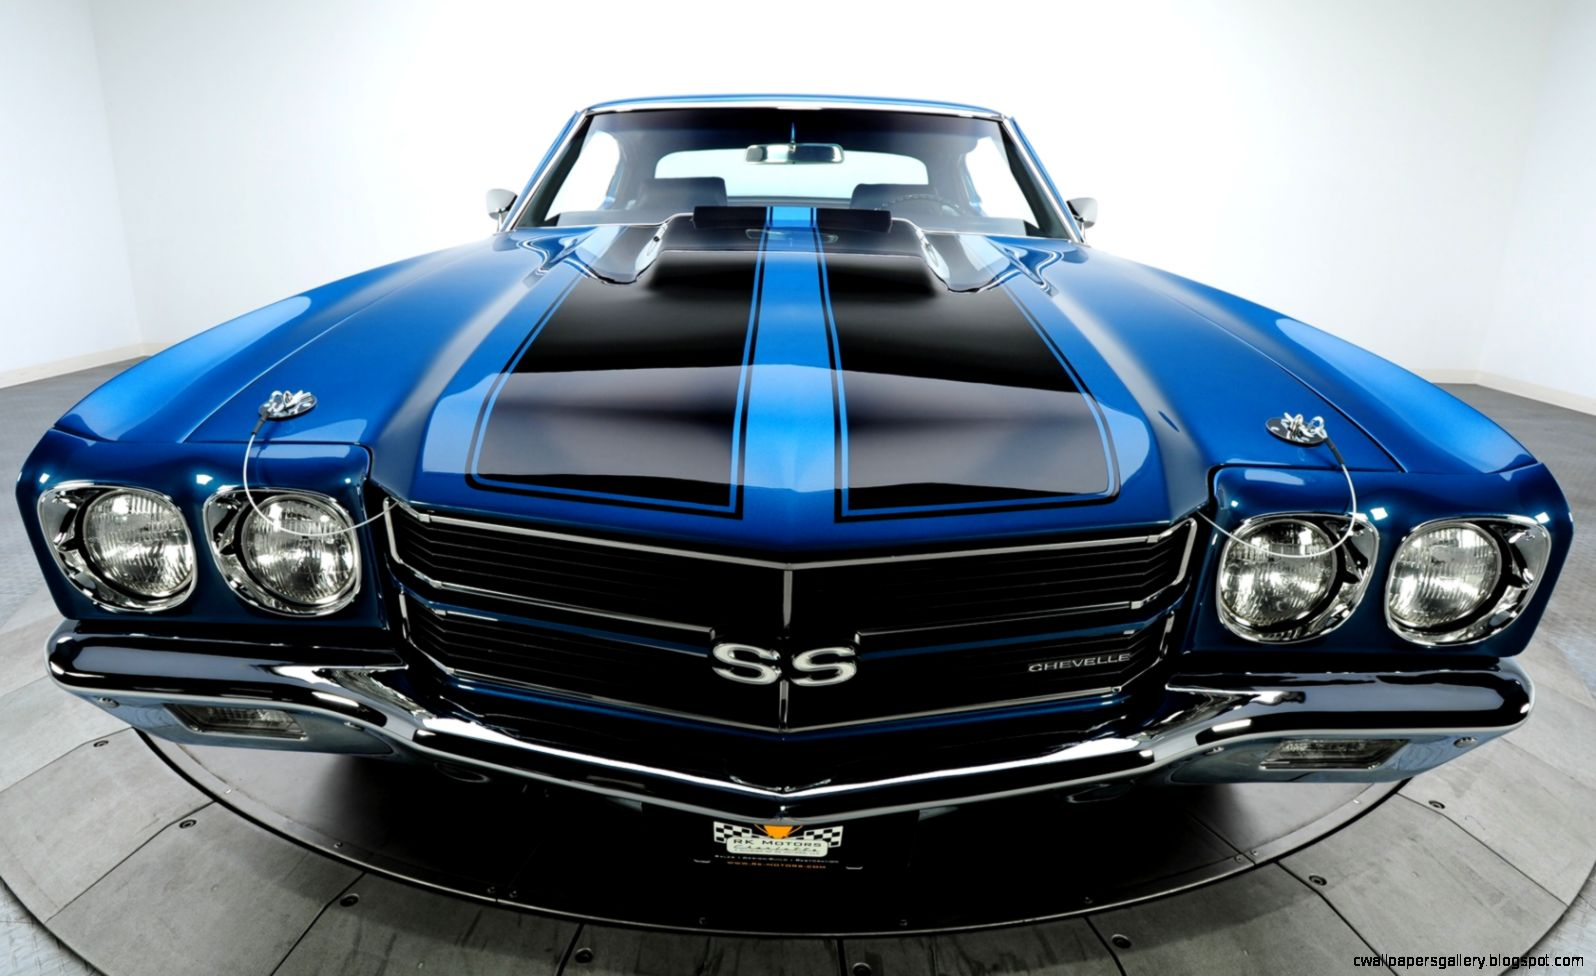 Chevelle SS Muscle Car